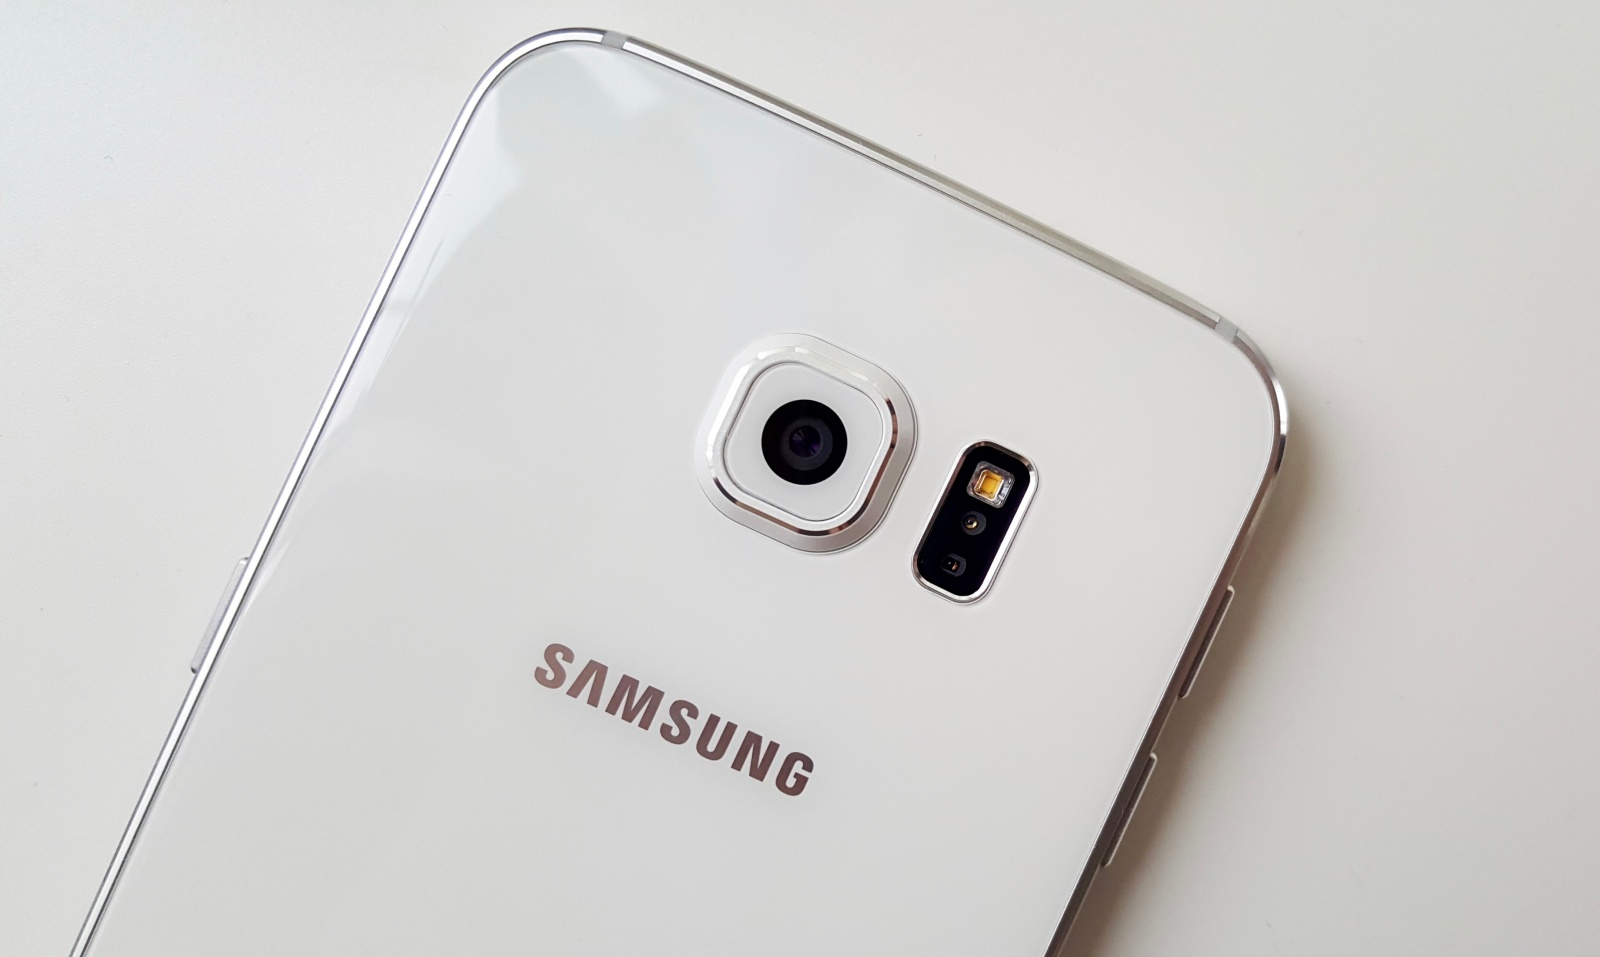 samsung-to-copy-iphone-upgrade-program-to-stop-switchers-image-cultofandroidcomwp-contentuploads201511Galaxy-S6-cam-jpg